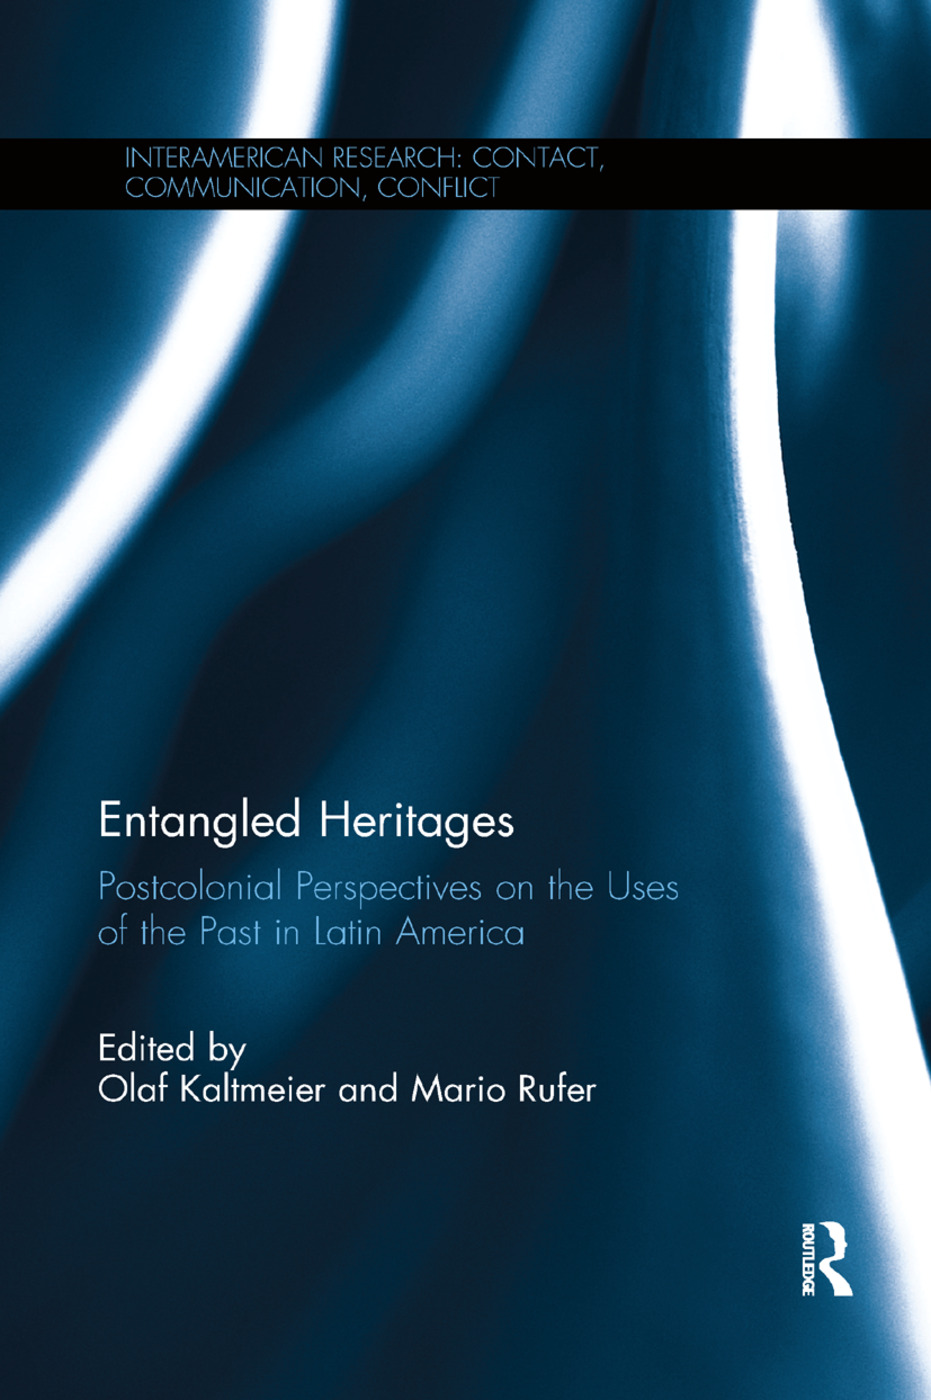 Entangled Heritages: Postcolonial Perspectives on the Uses of the Past in Latin America book cover